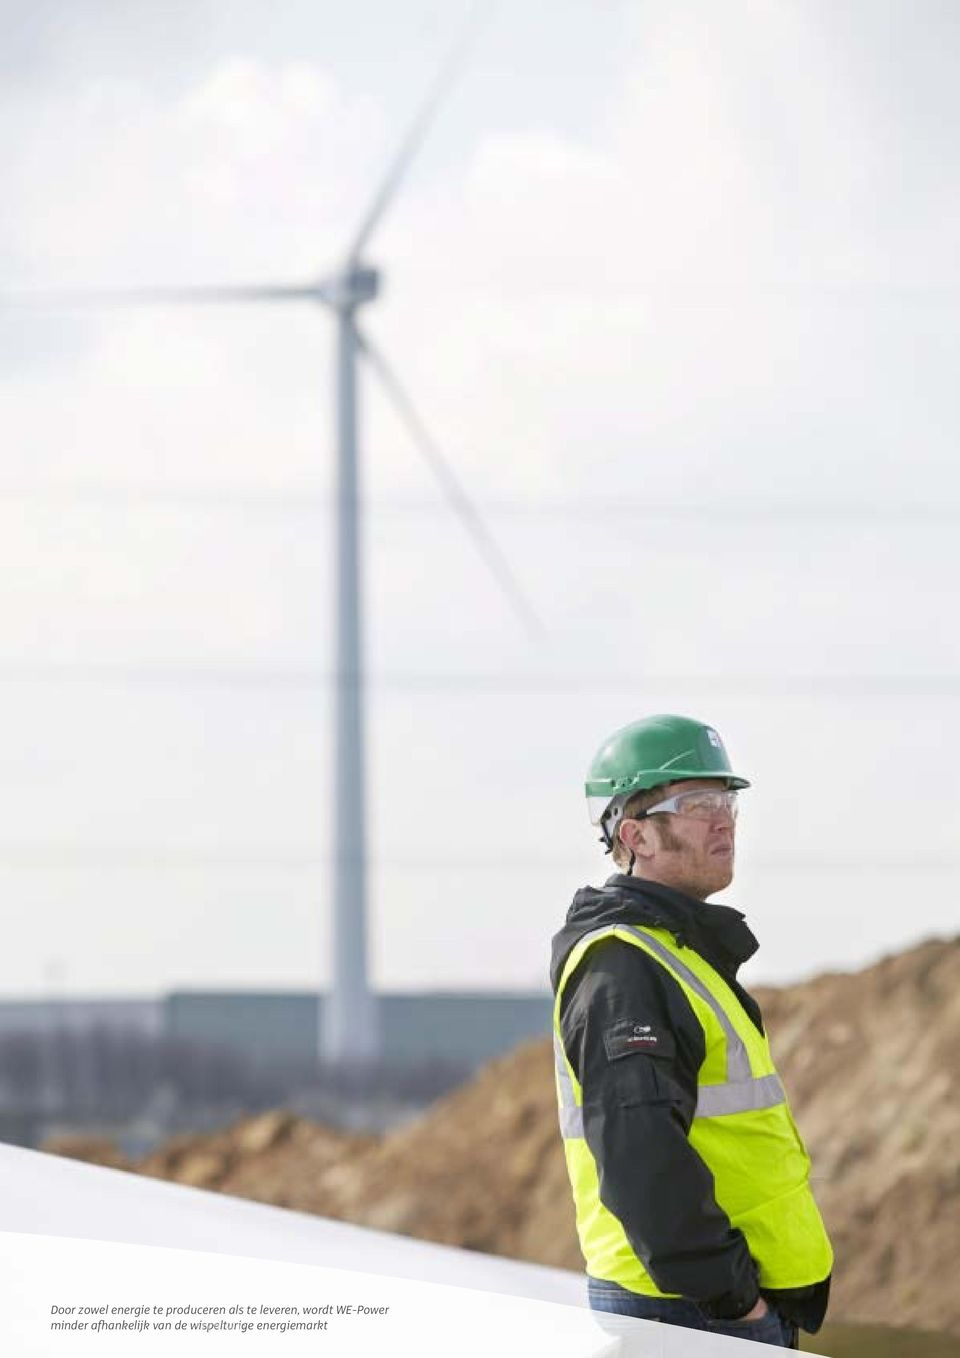 wordt WE-Power minder